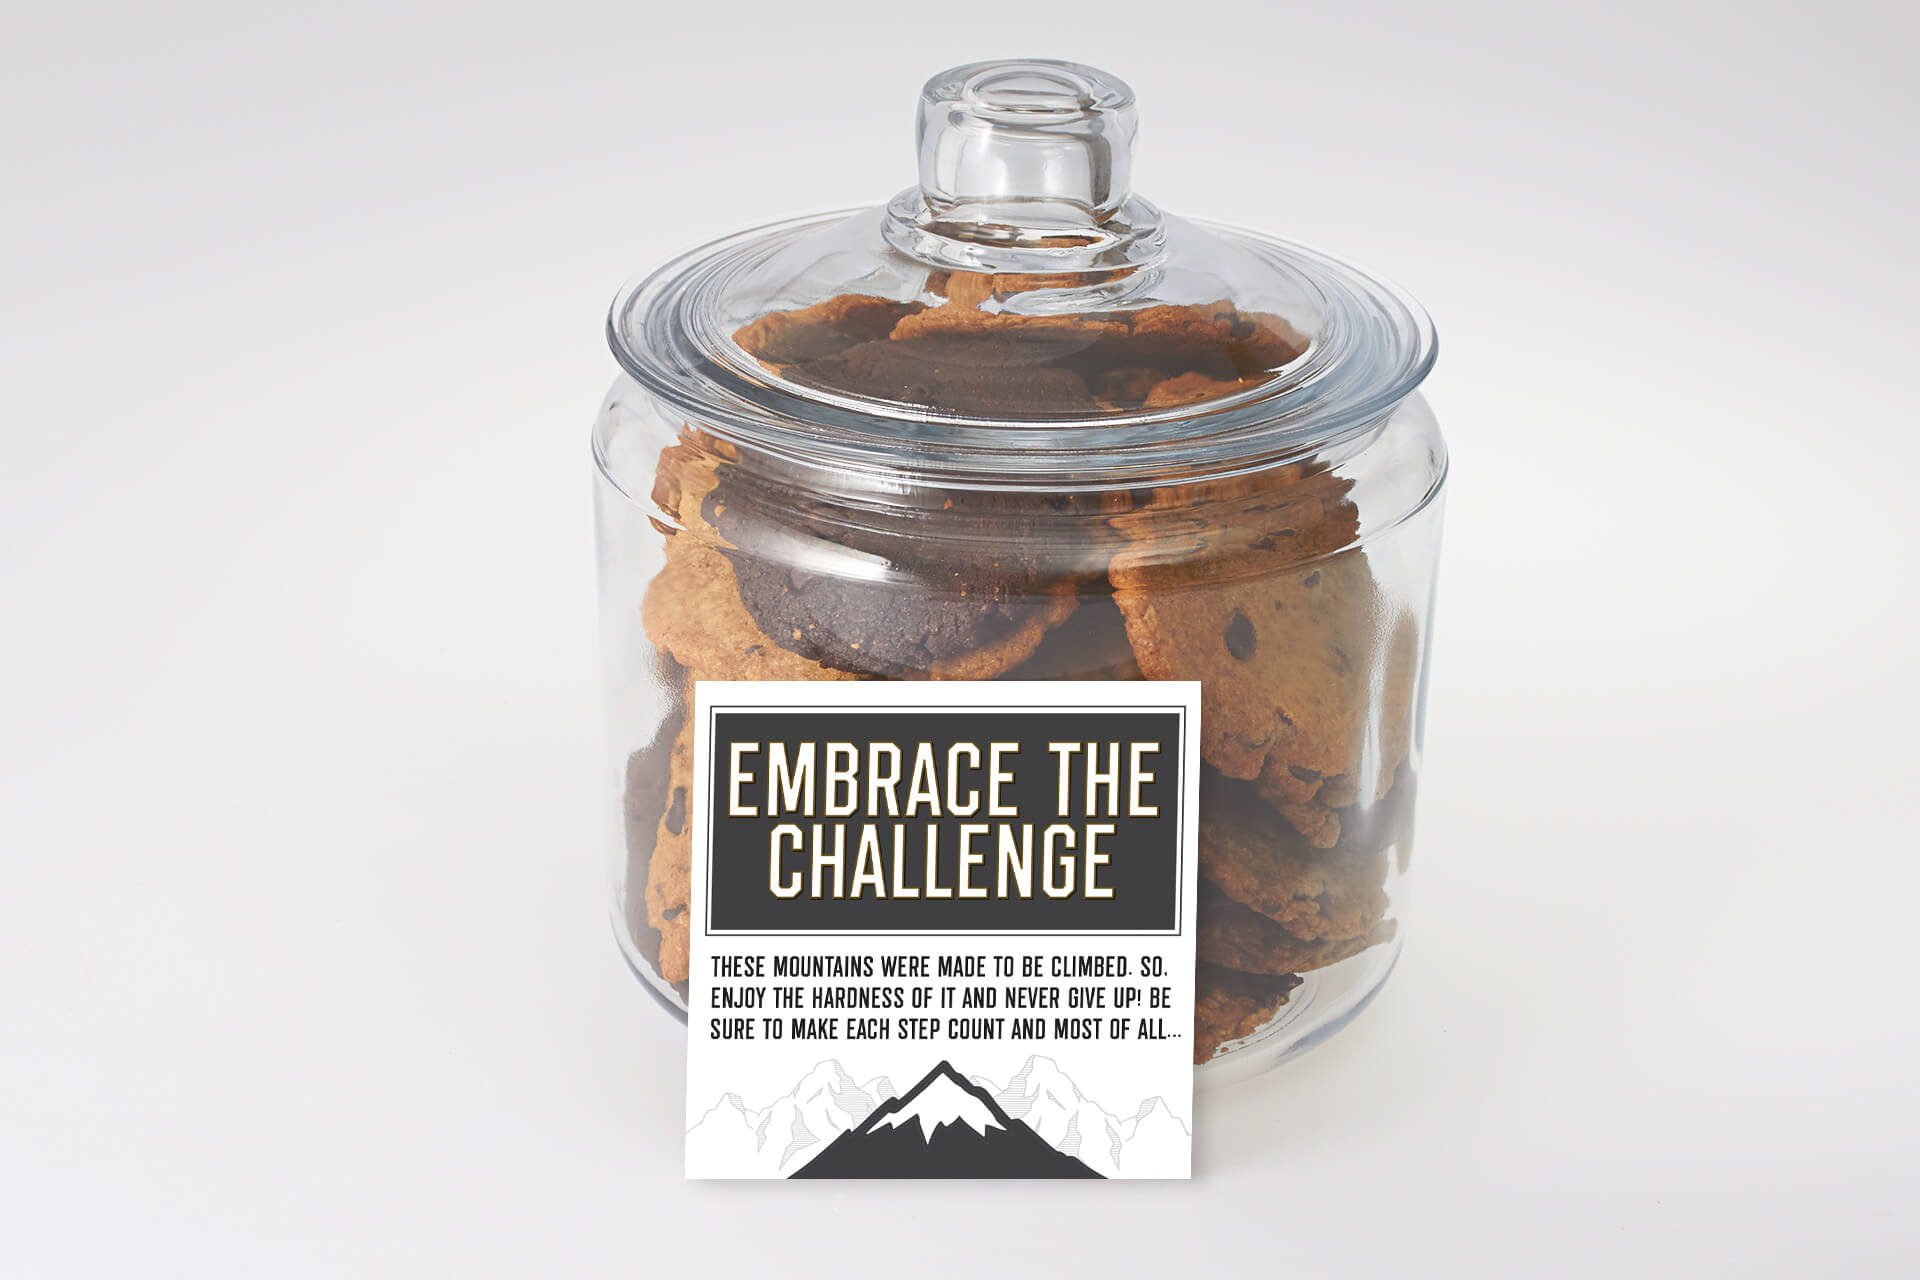 Embrace the challenge cookie Jar that inspires greatness